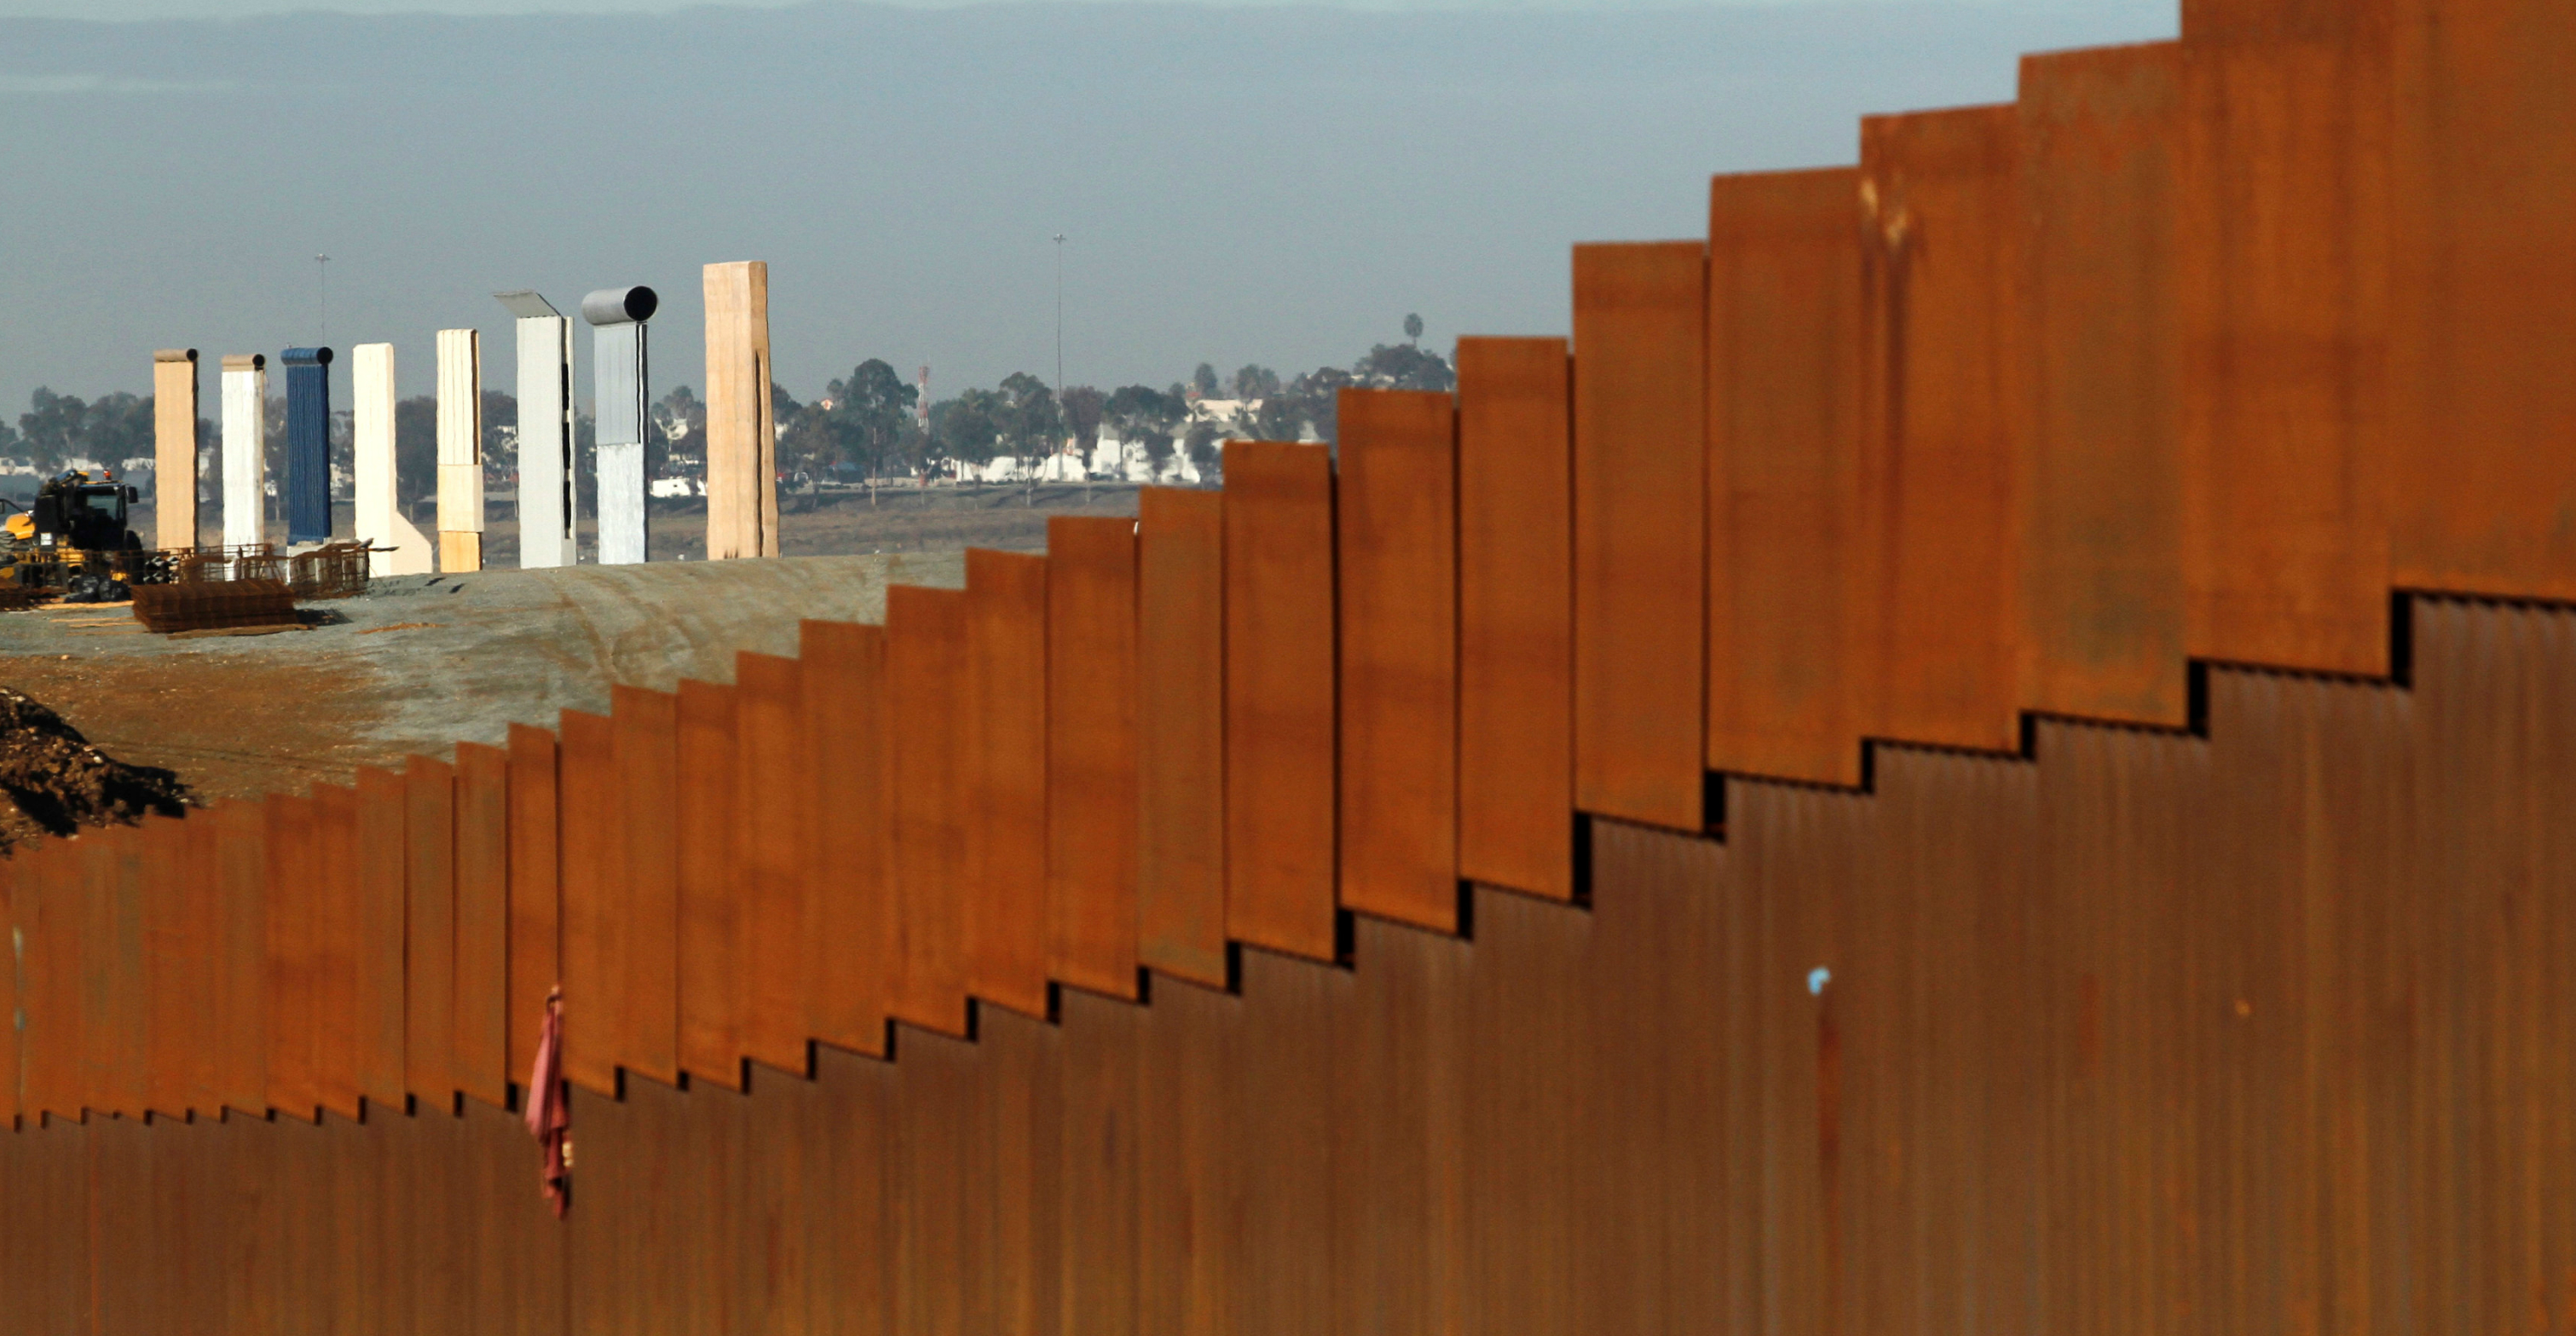 Prototypes for US President Donald Trump's border wall are seen behind the border fence between Mexico and the United States, in Tijuana, Mexico. Photo: Reuters